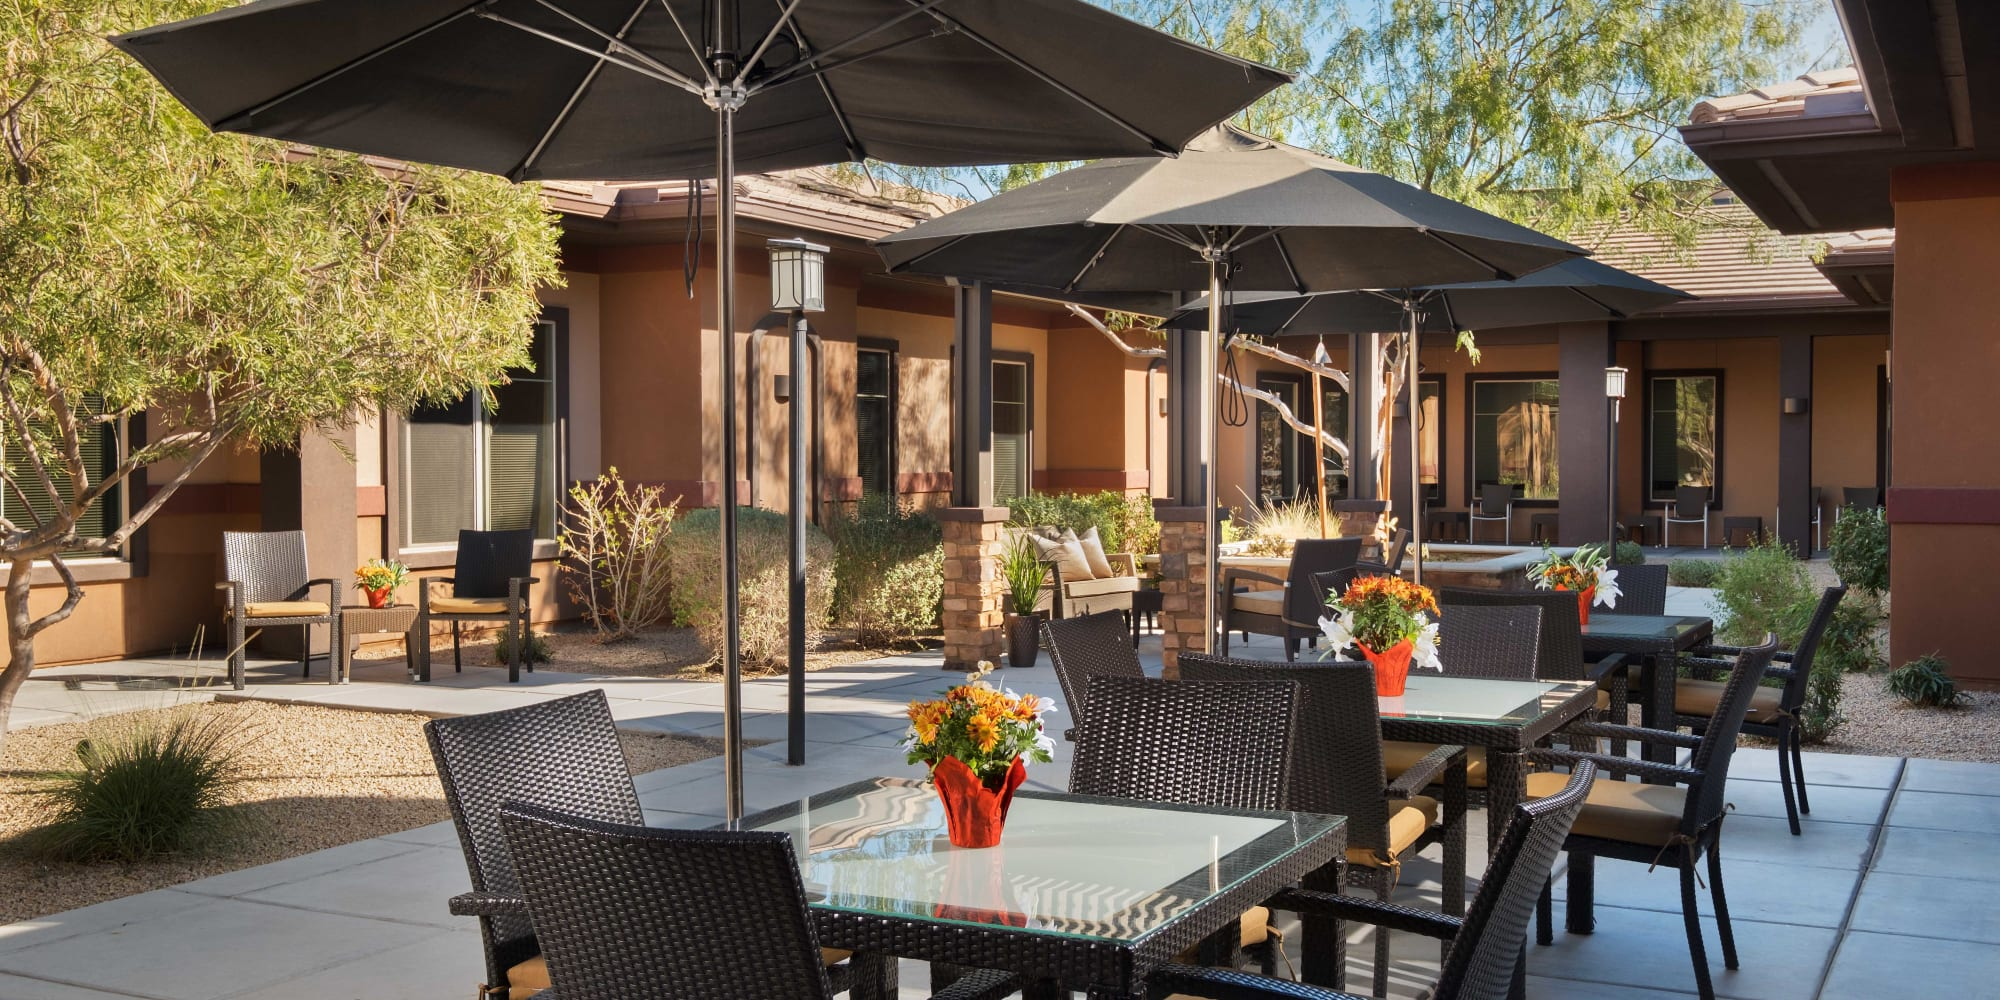 An outdoor dining area at Avenir Senior Living in Scottsdale, Arizona